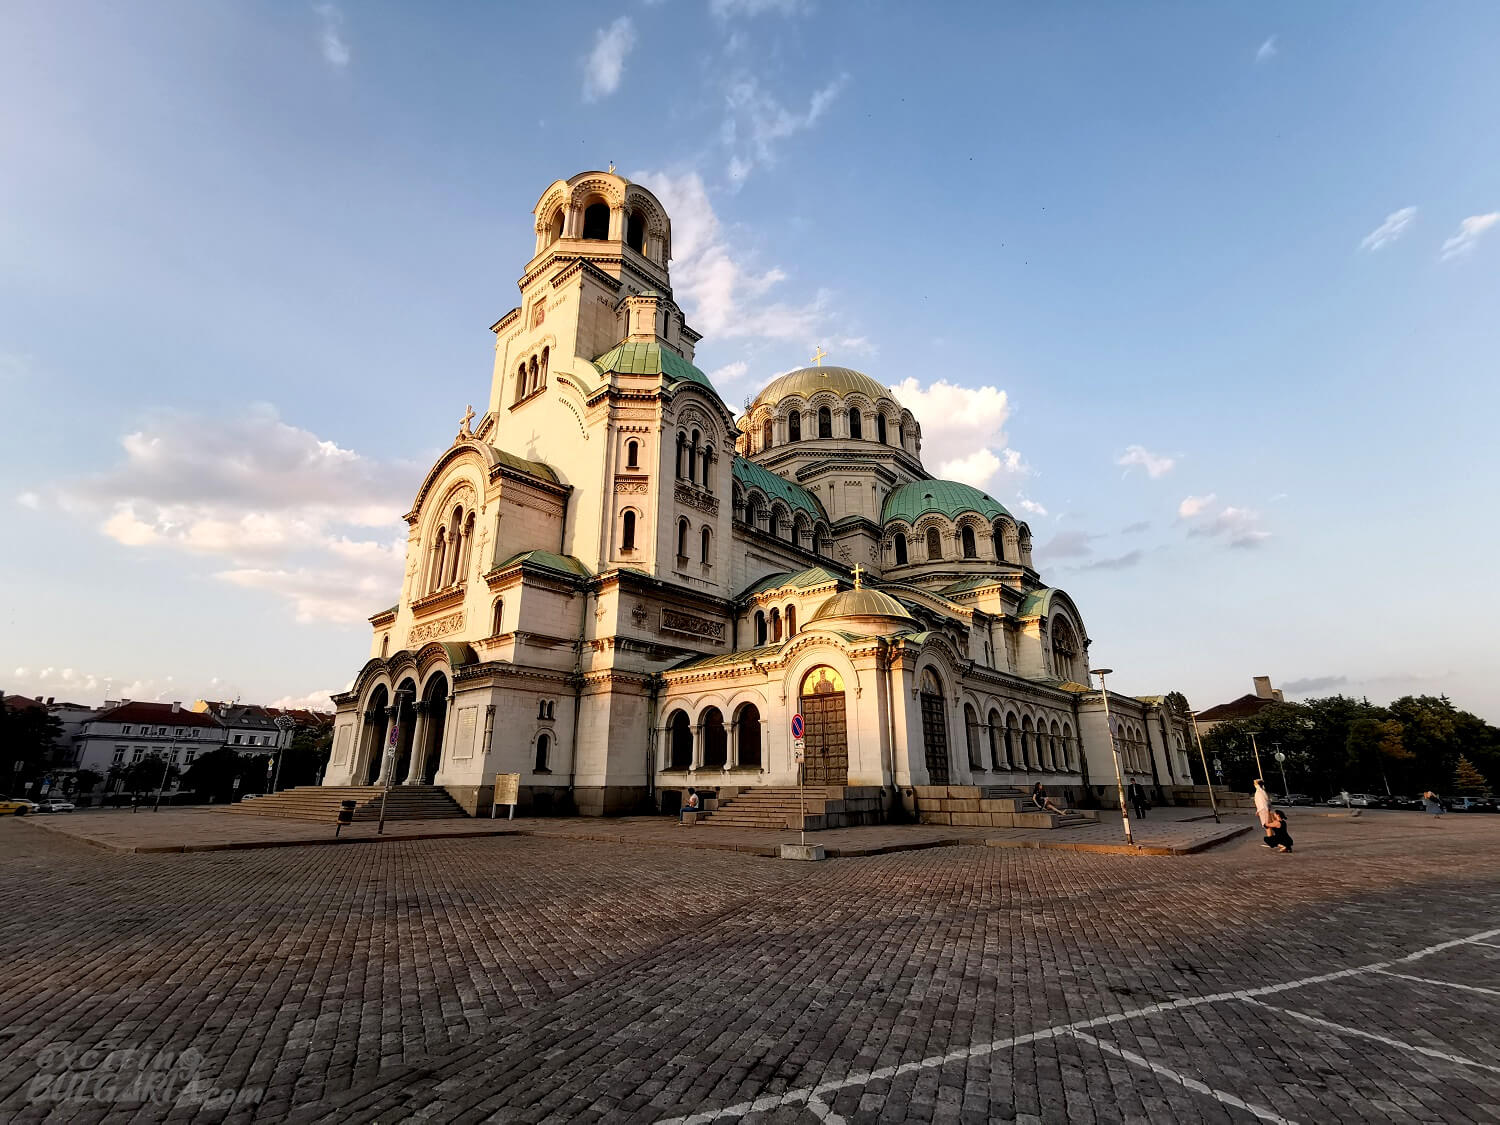 Alexander Nevsky Cathedral from a wide angle